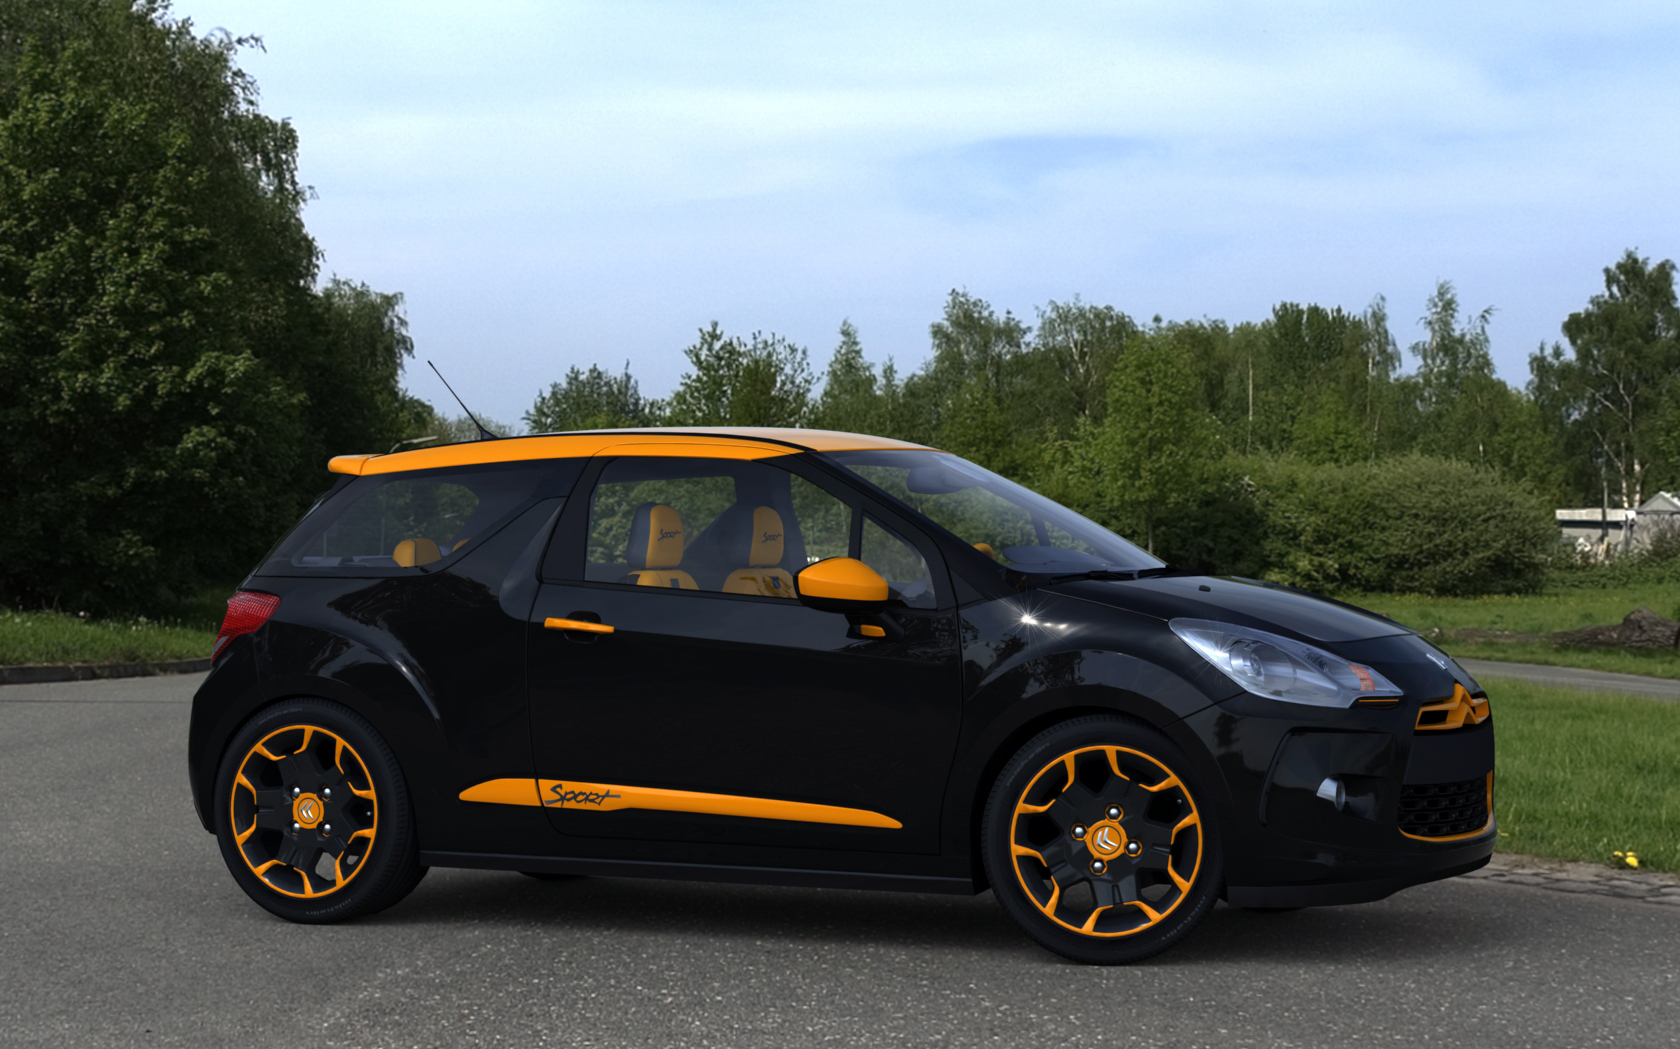 citroen ds3 sport orange r1 by rjamp on deviantart. Black Bedroom Furniture Sets. Home Design Ideas